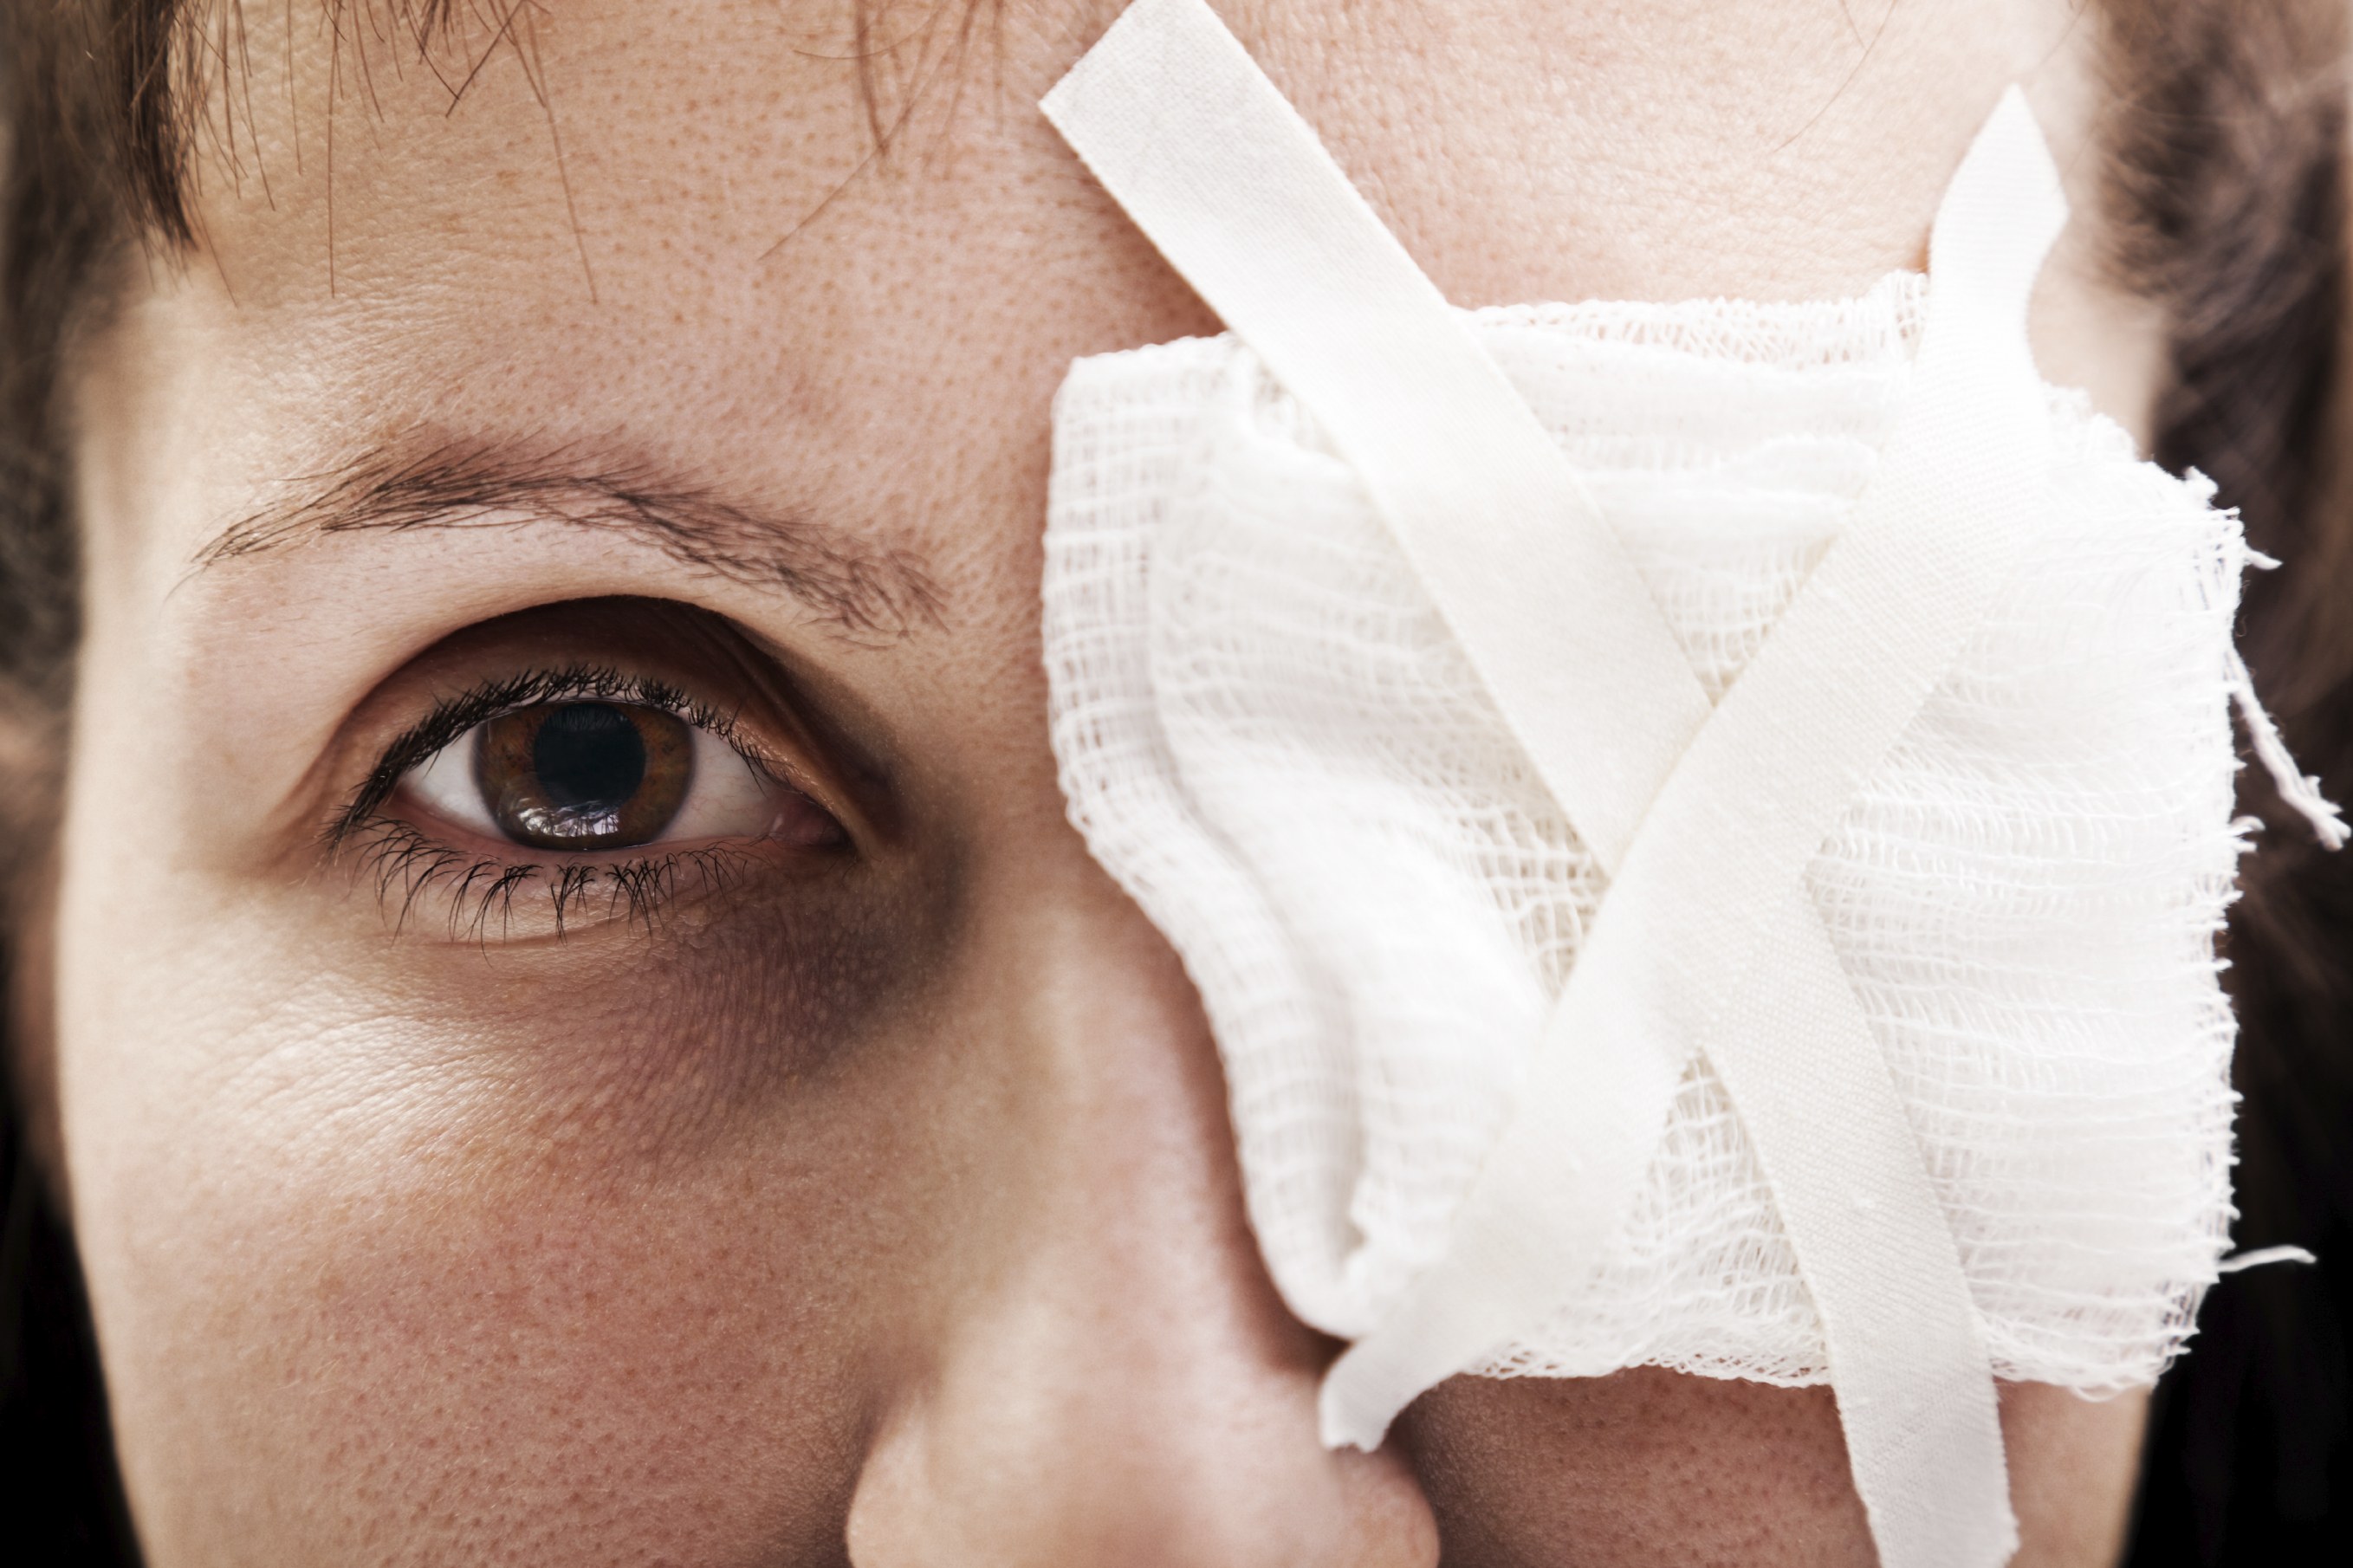 The most common causes of eye injuries in the U.S..